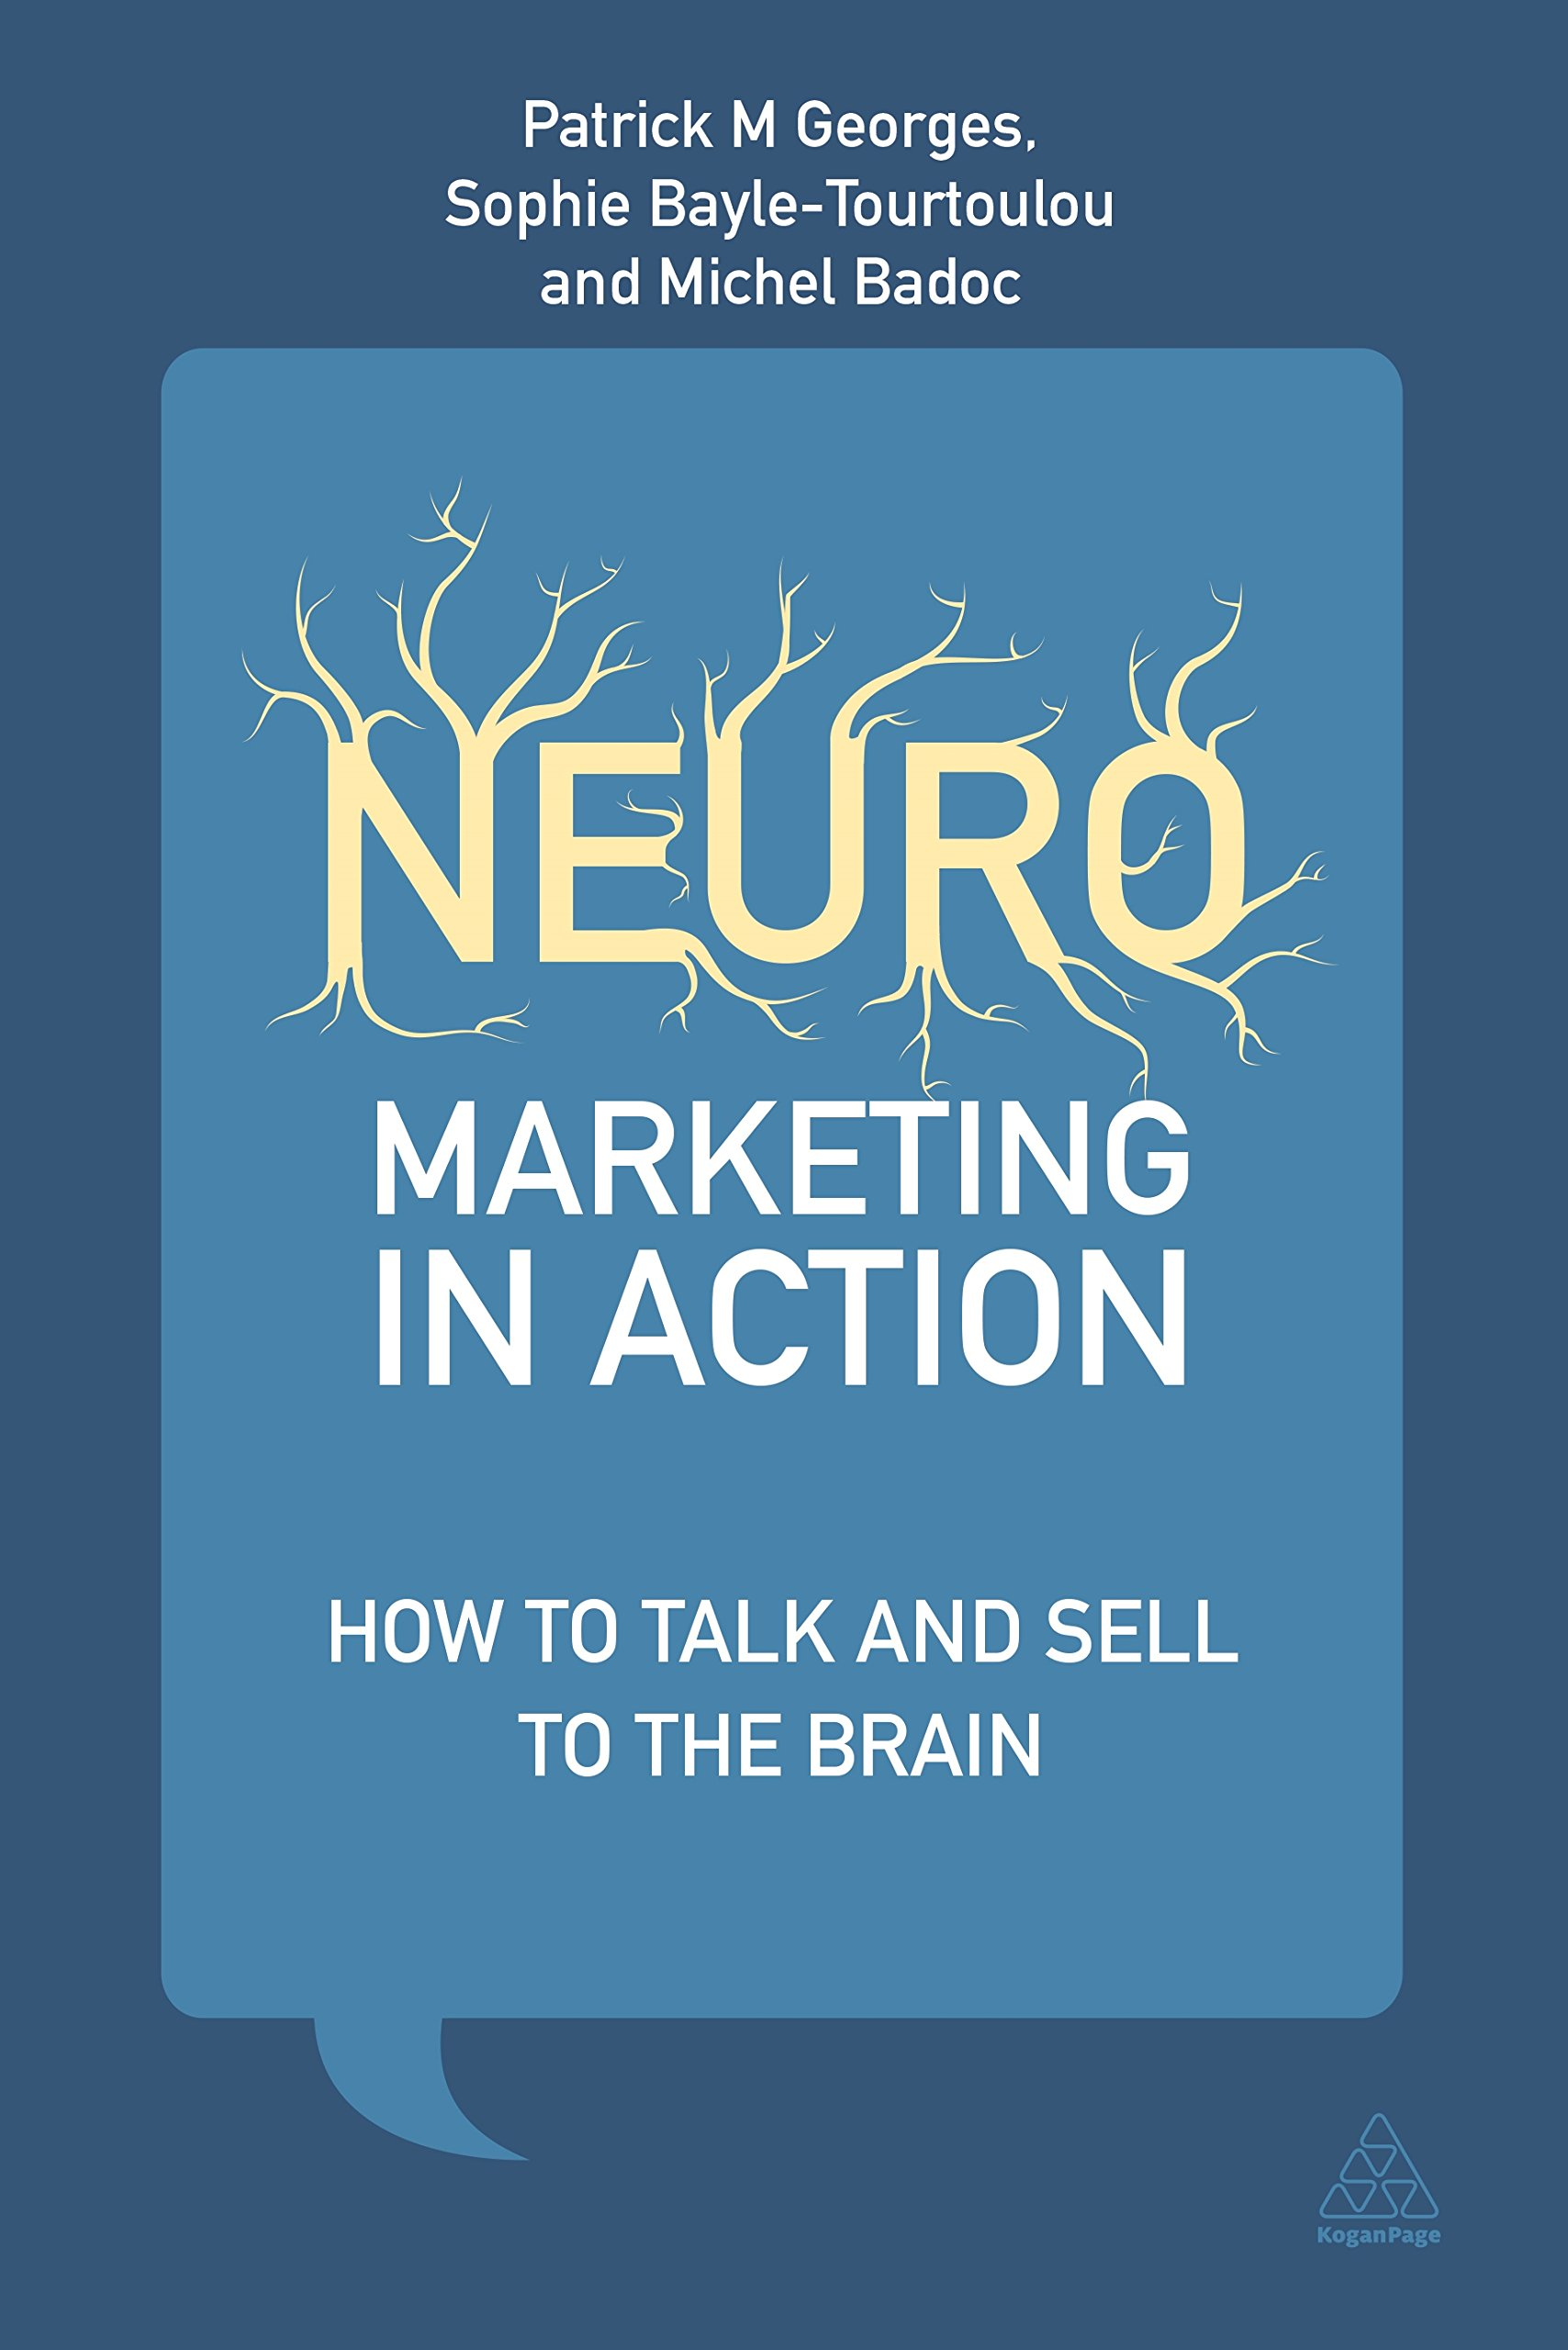 Neuromarketing in Action: How to Talk and Sell to the Brain: Amazon.es: Patrick M Georges, Anne-Sophie Bayle-Tourtoulou, Michel Badoc: Libros en idiomas ...